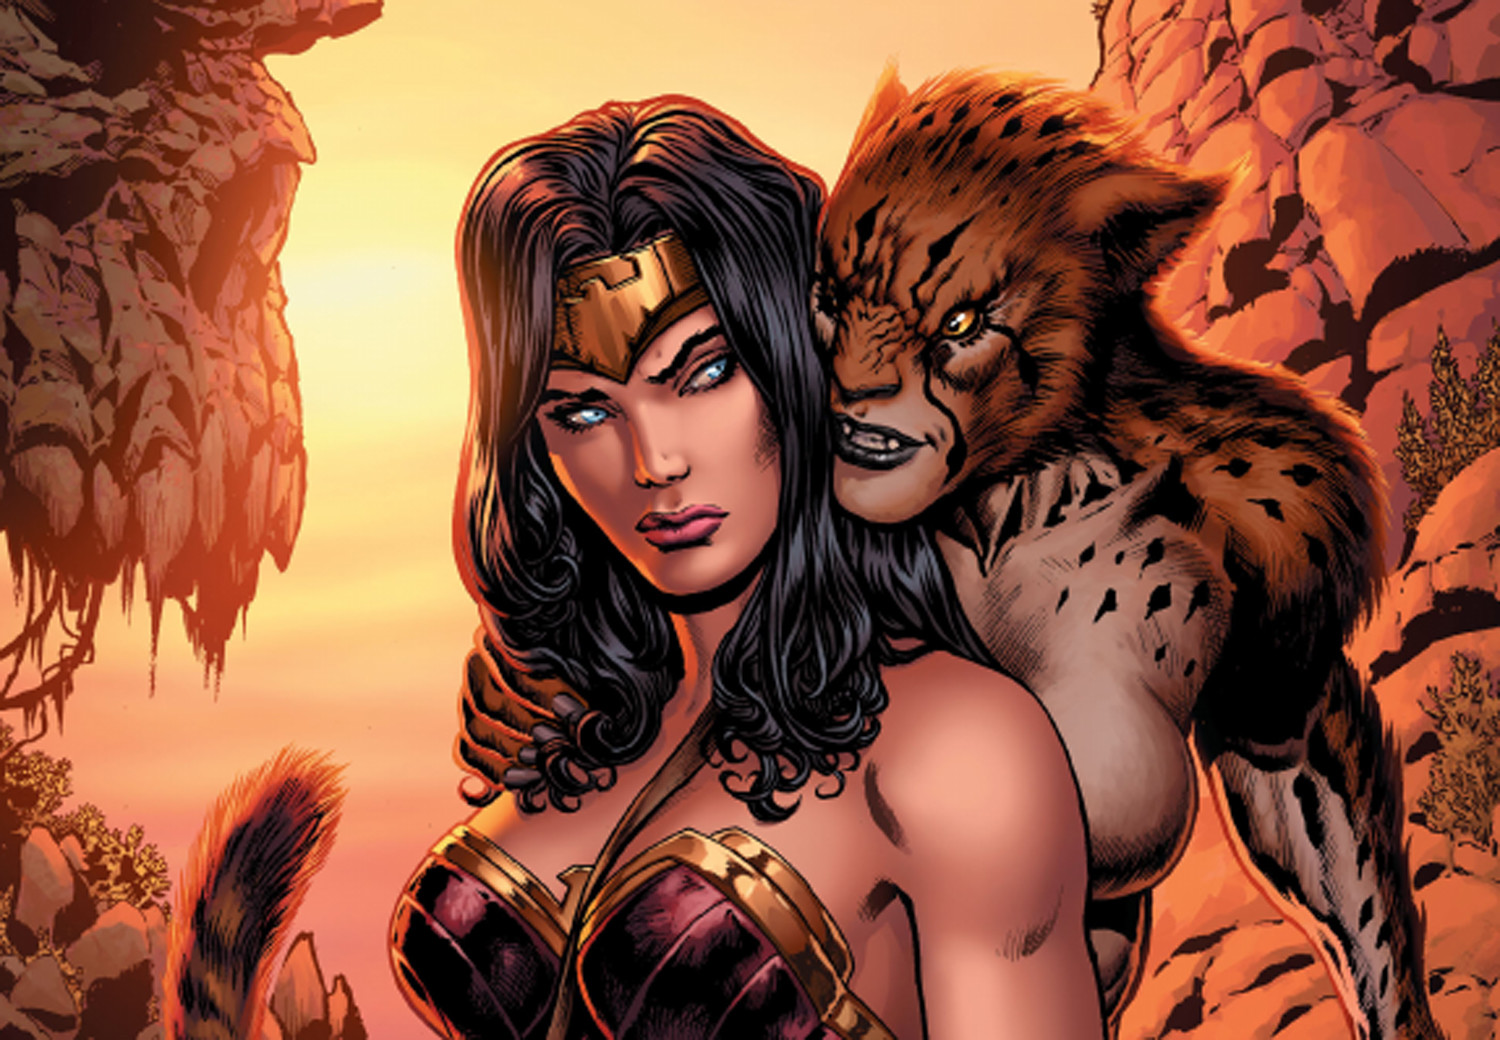 Wonder Woman and Cheetah